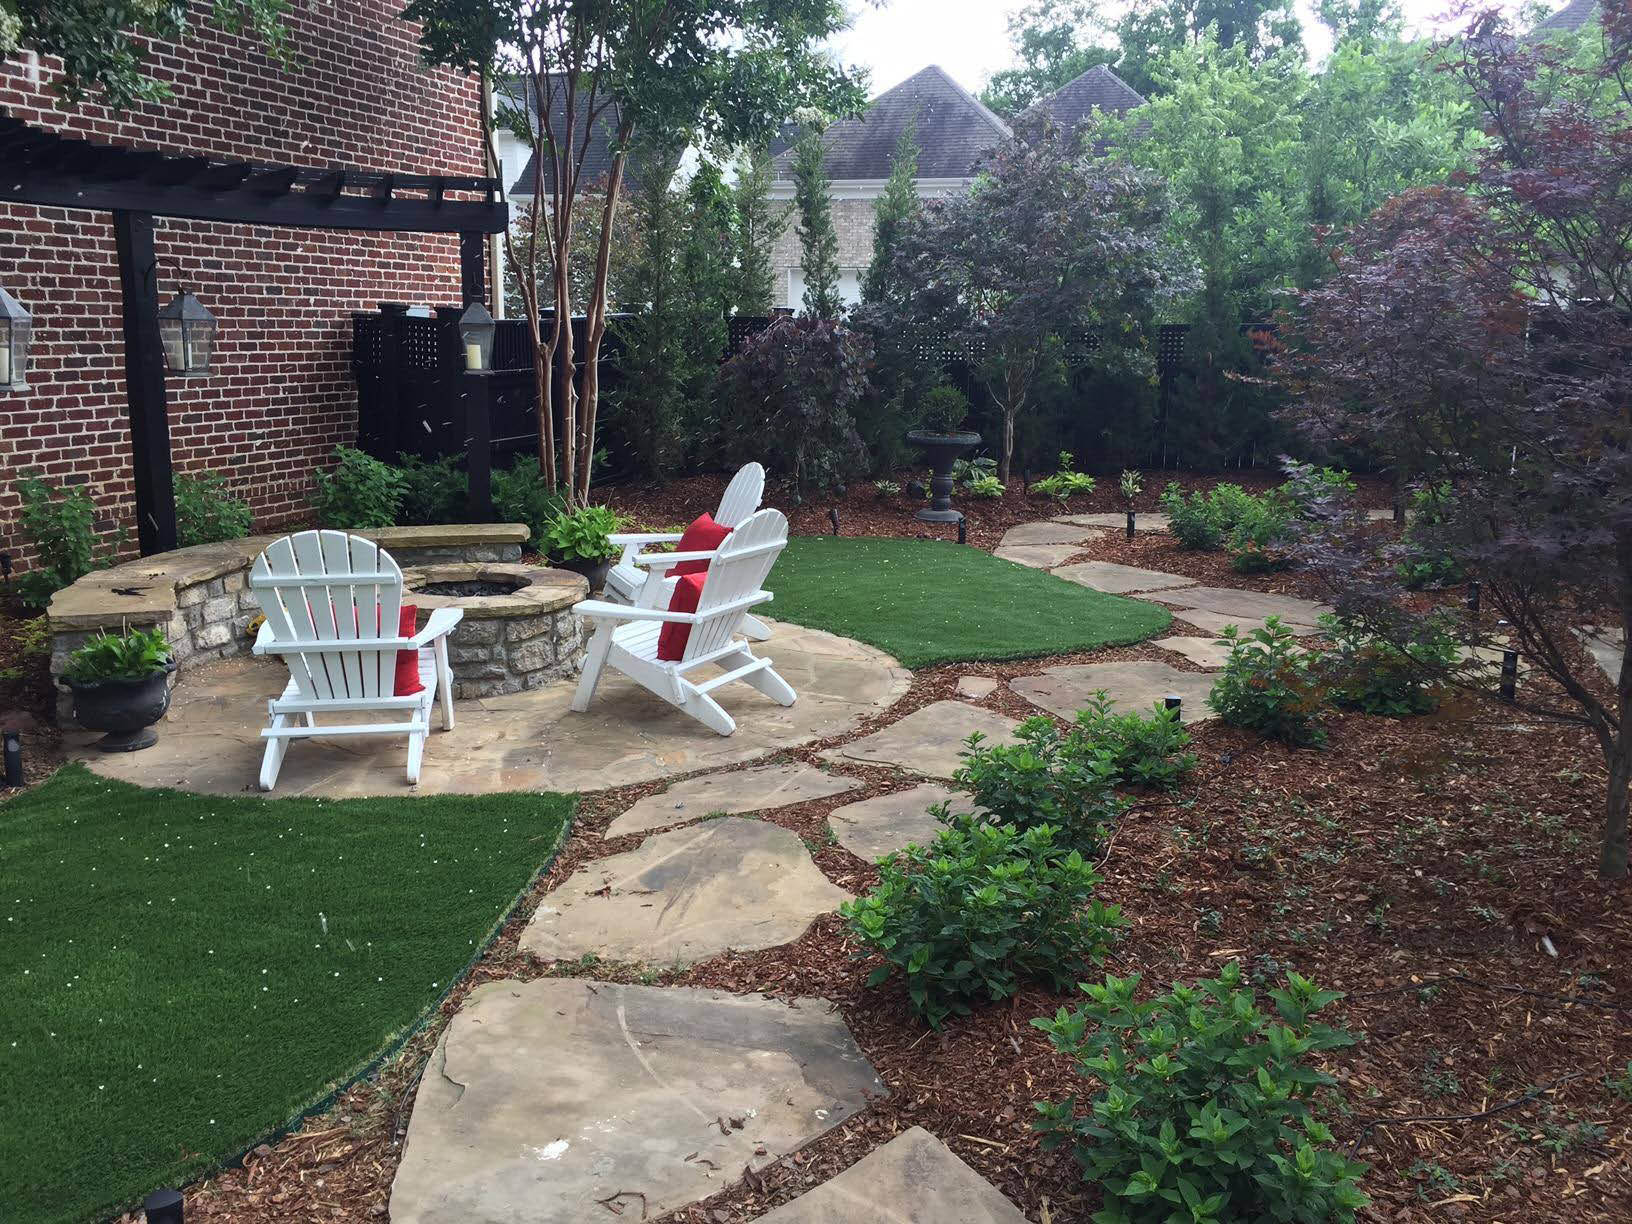 Backyard spaces will improve your homes' value